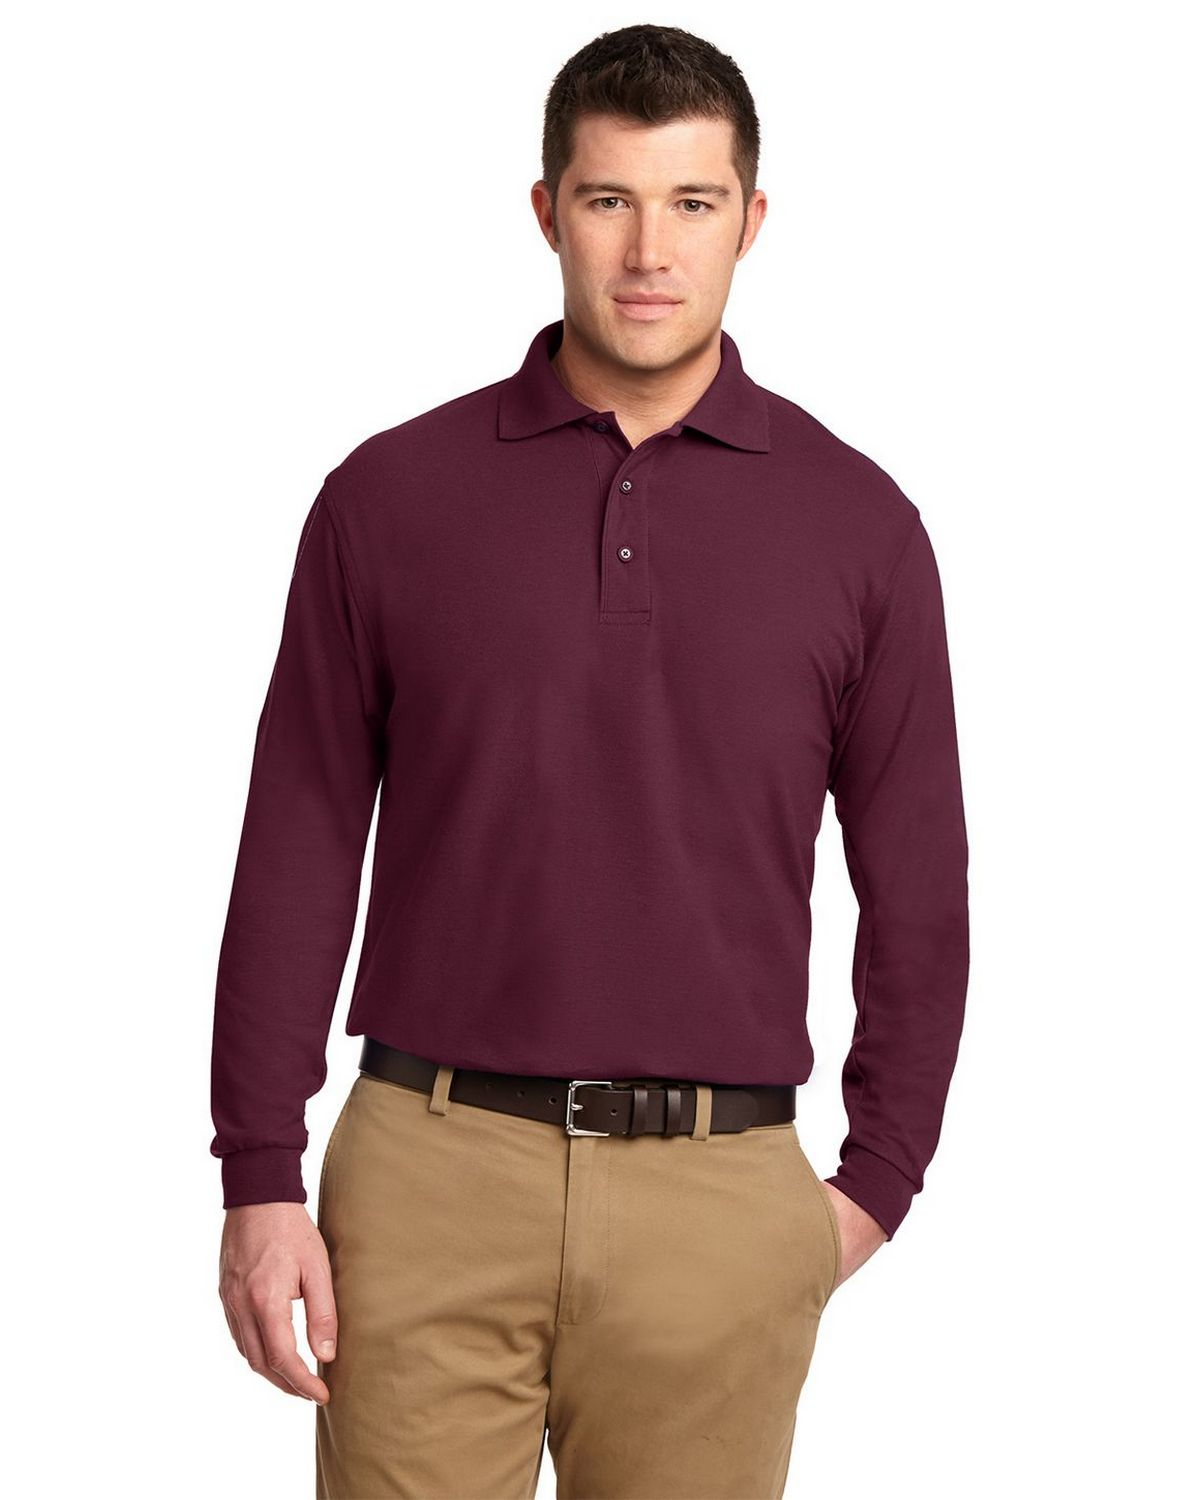 Port Authority K500LS Men's Long Sleeve Silk Touch Polo - Burgundy - XS #silk